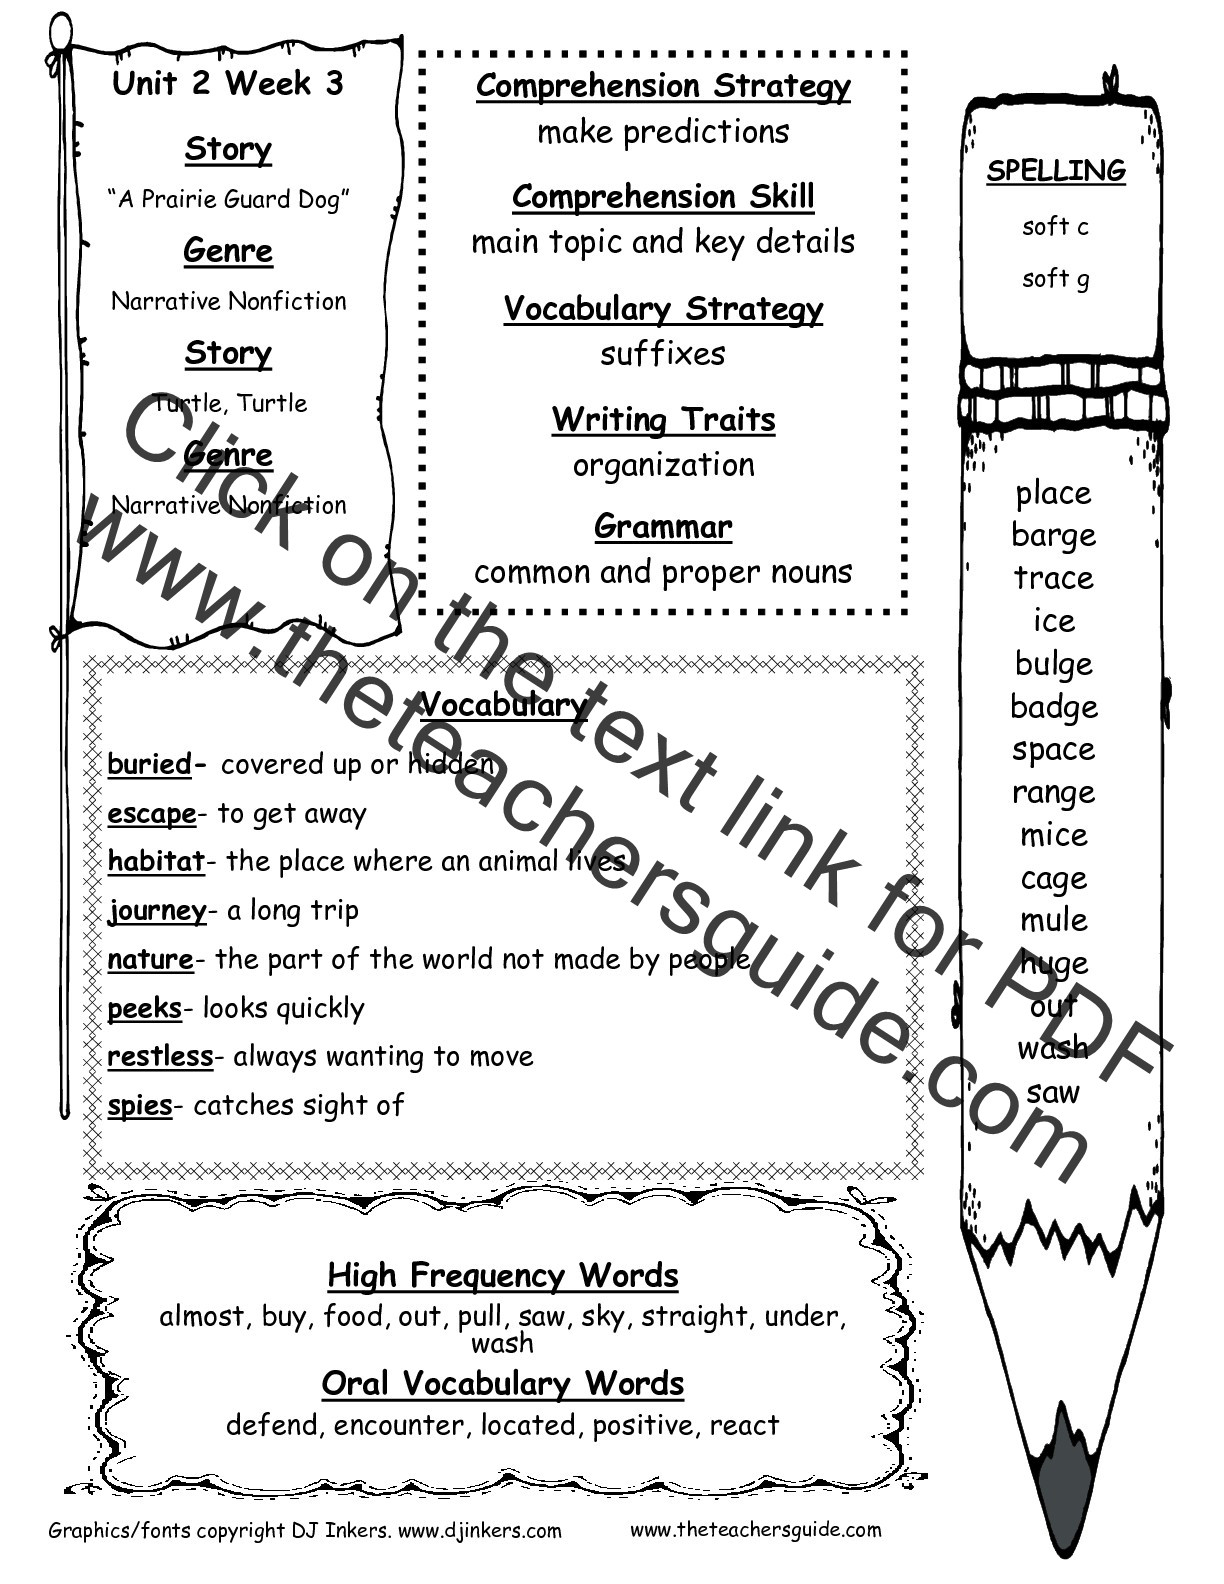 Proper Nouns Worksheet 2nd Grade Wonders Second Grade Unit Two Week Three Printouts